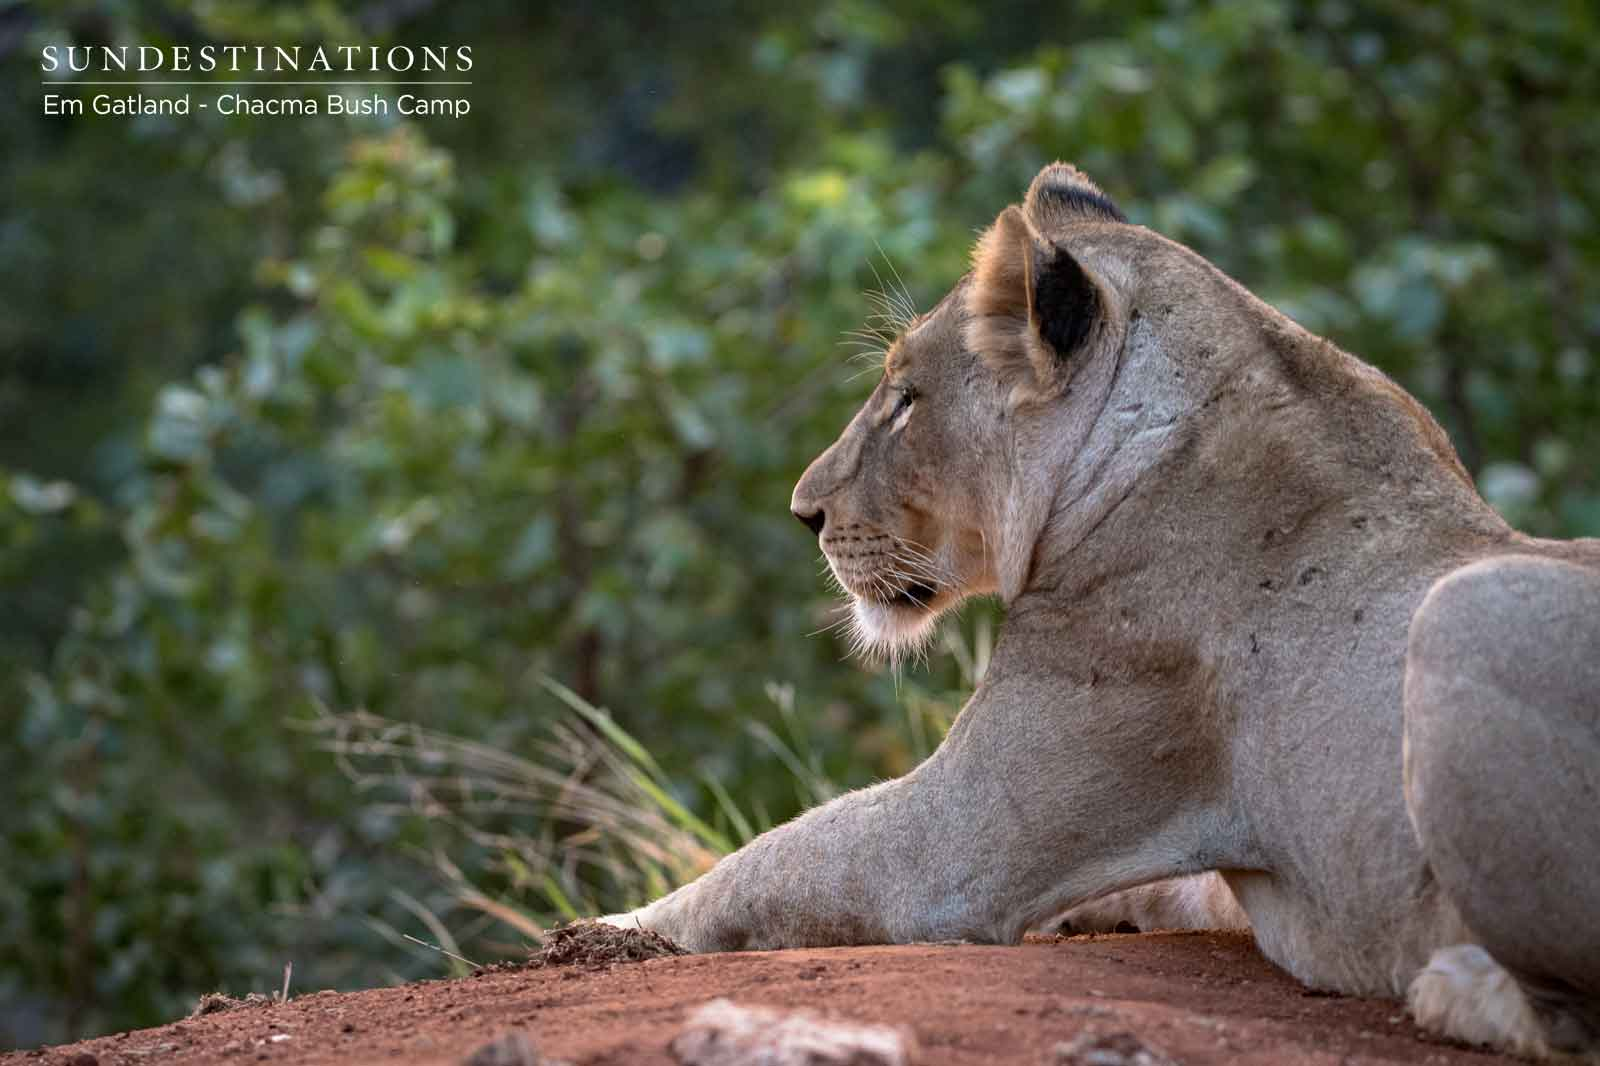 Lioness at Chacma